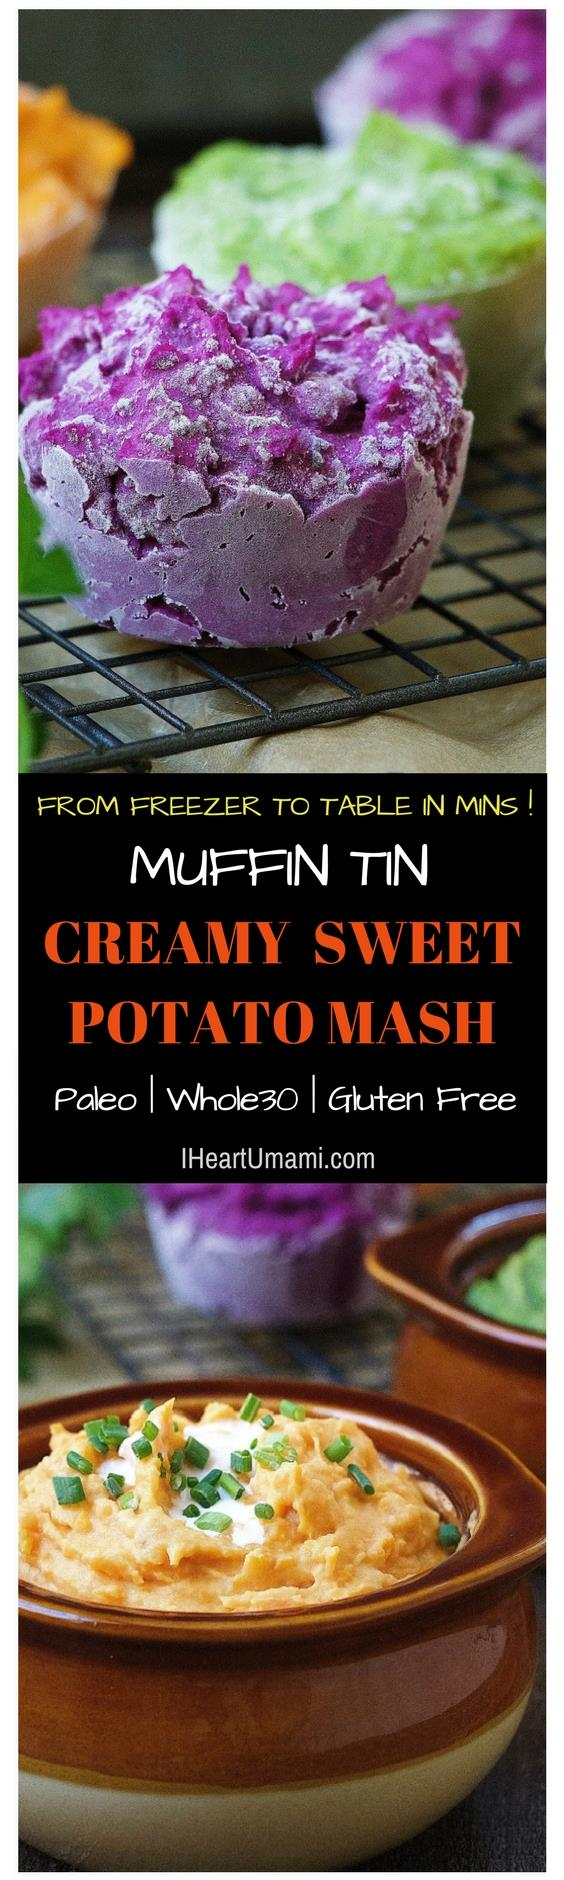 Easy make ahead Whole30 Paleo Muffin Tin Sweet Potato Mash for quick weeknight meals that are perfect for meal prep and batch cooking. From freezer to table served in minutes ! Check out both Instant Pot and oven versions. No more watery and soggy Sweet Potato Mash ! Click in to find out more !